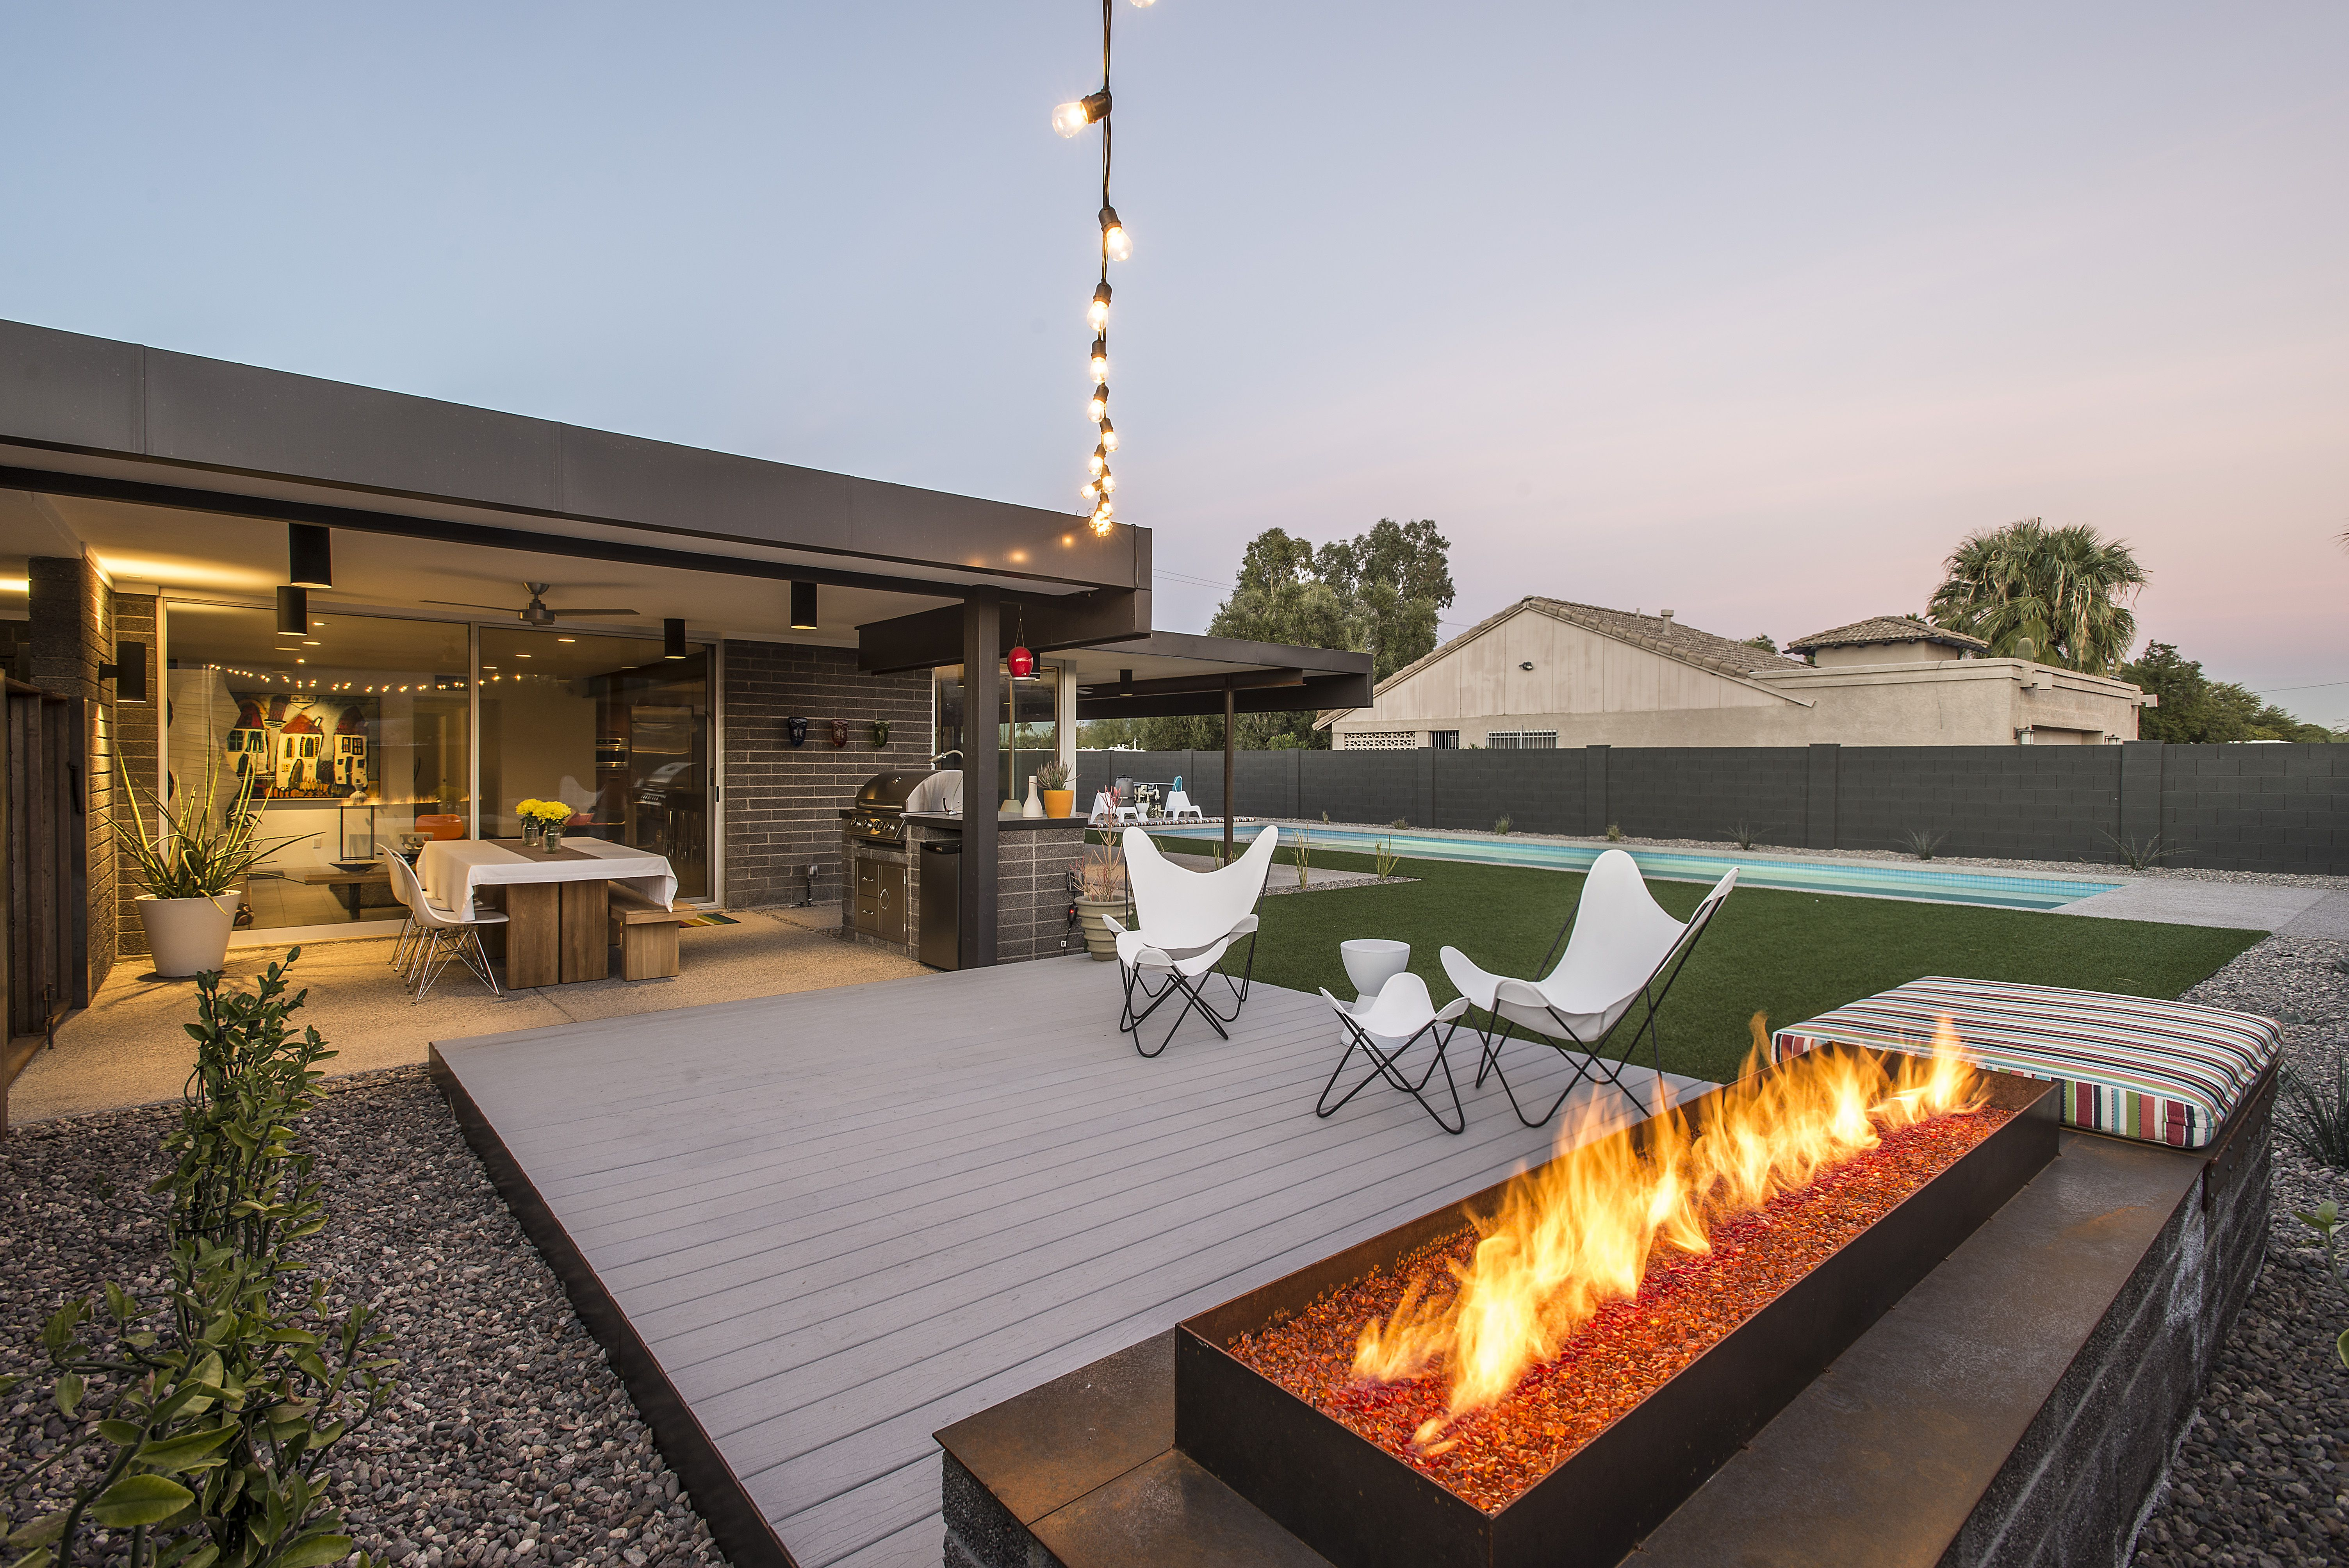 Linear fire pit and raised posite deck was incorporated into this